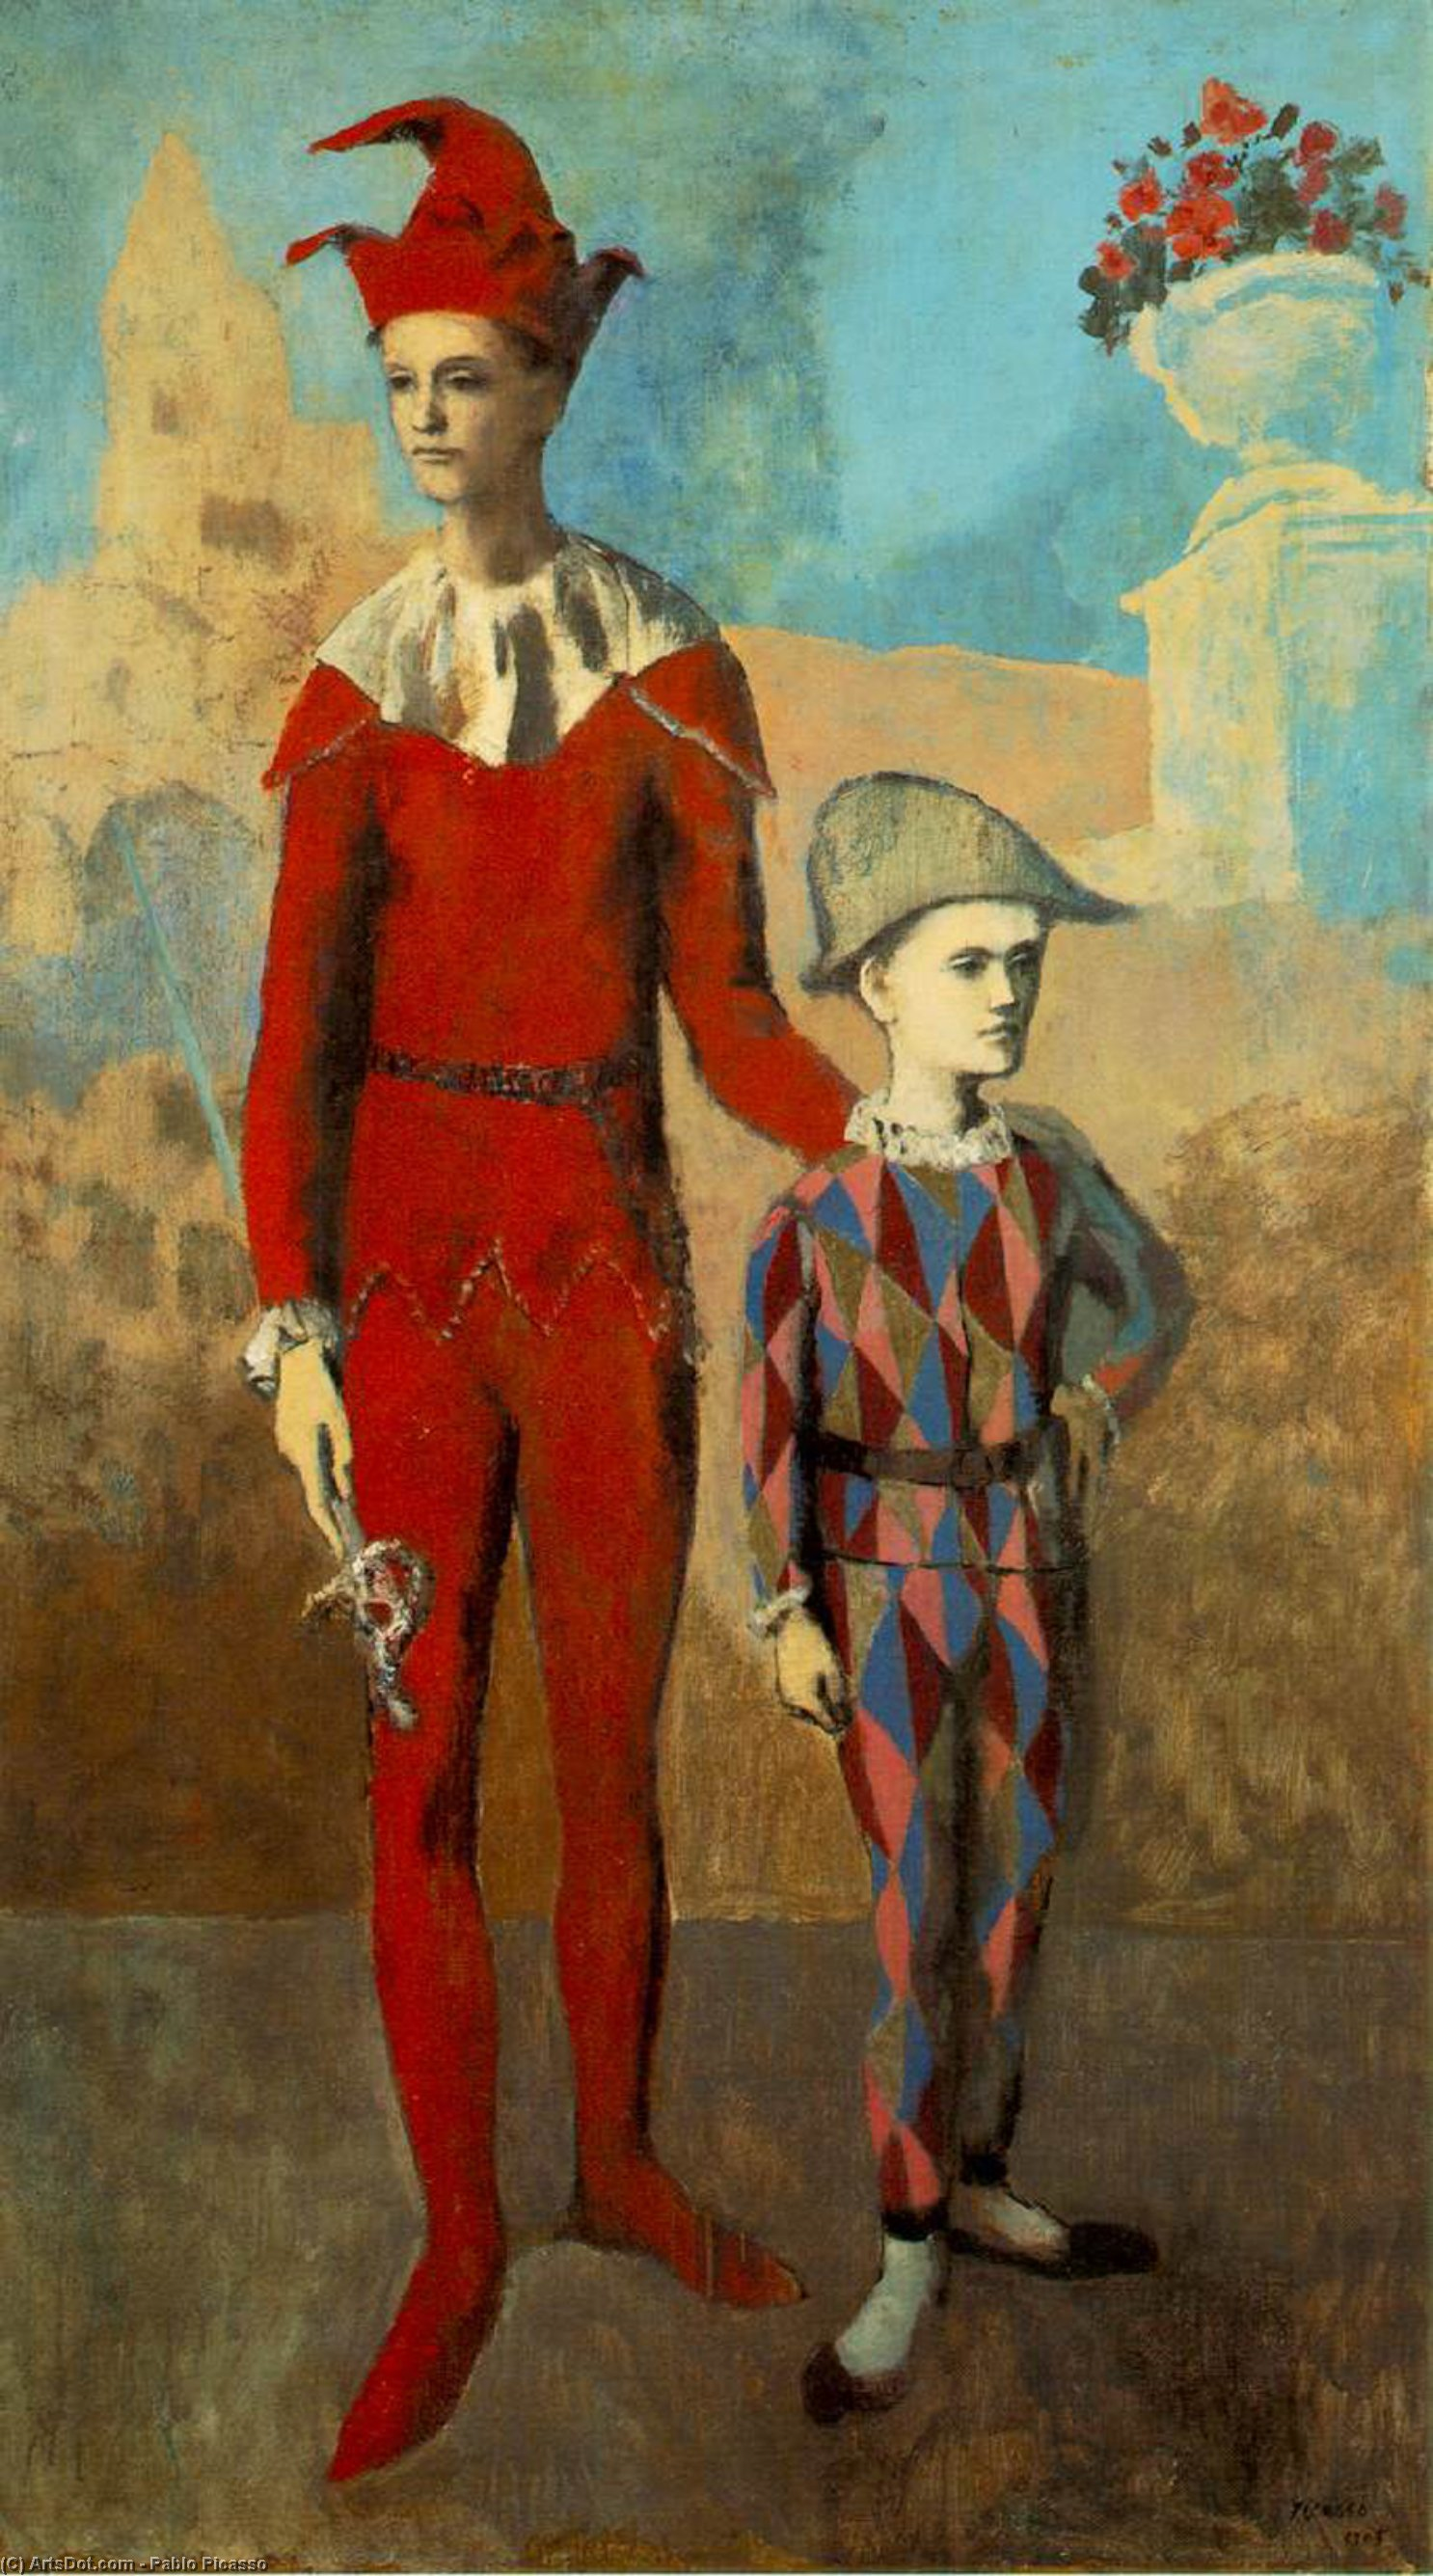 Wikioo.org - The Encyclopedia of Fine Arts - Painting, Artwork by Pablo Picasso - Acrobat and young harlequin